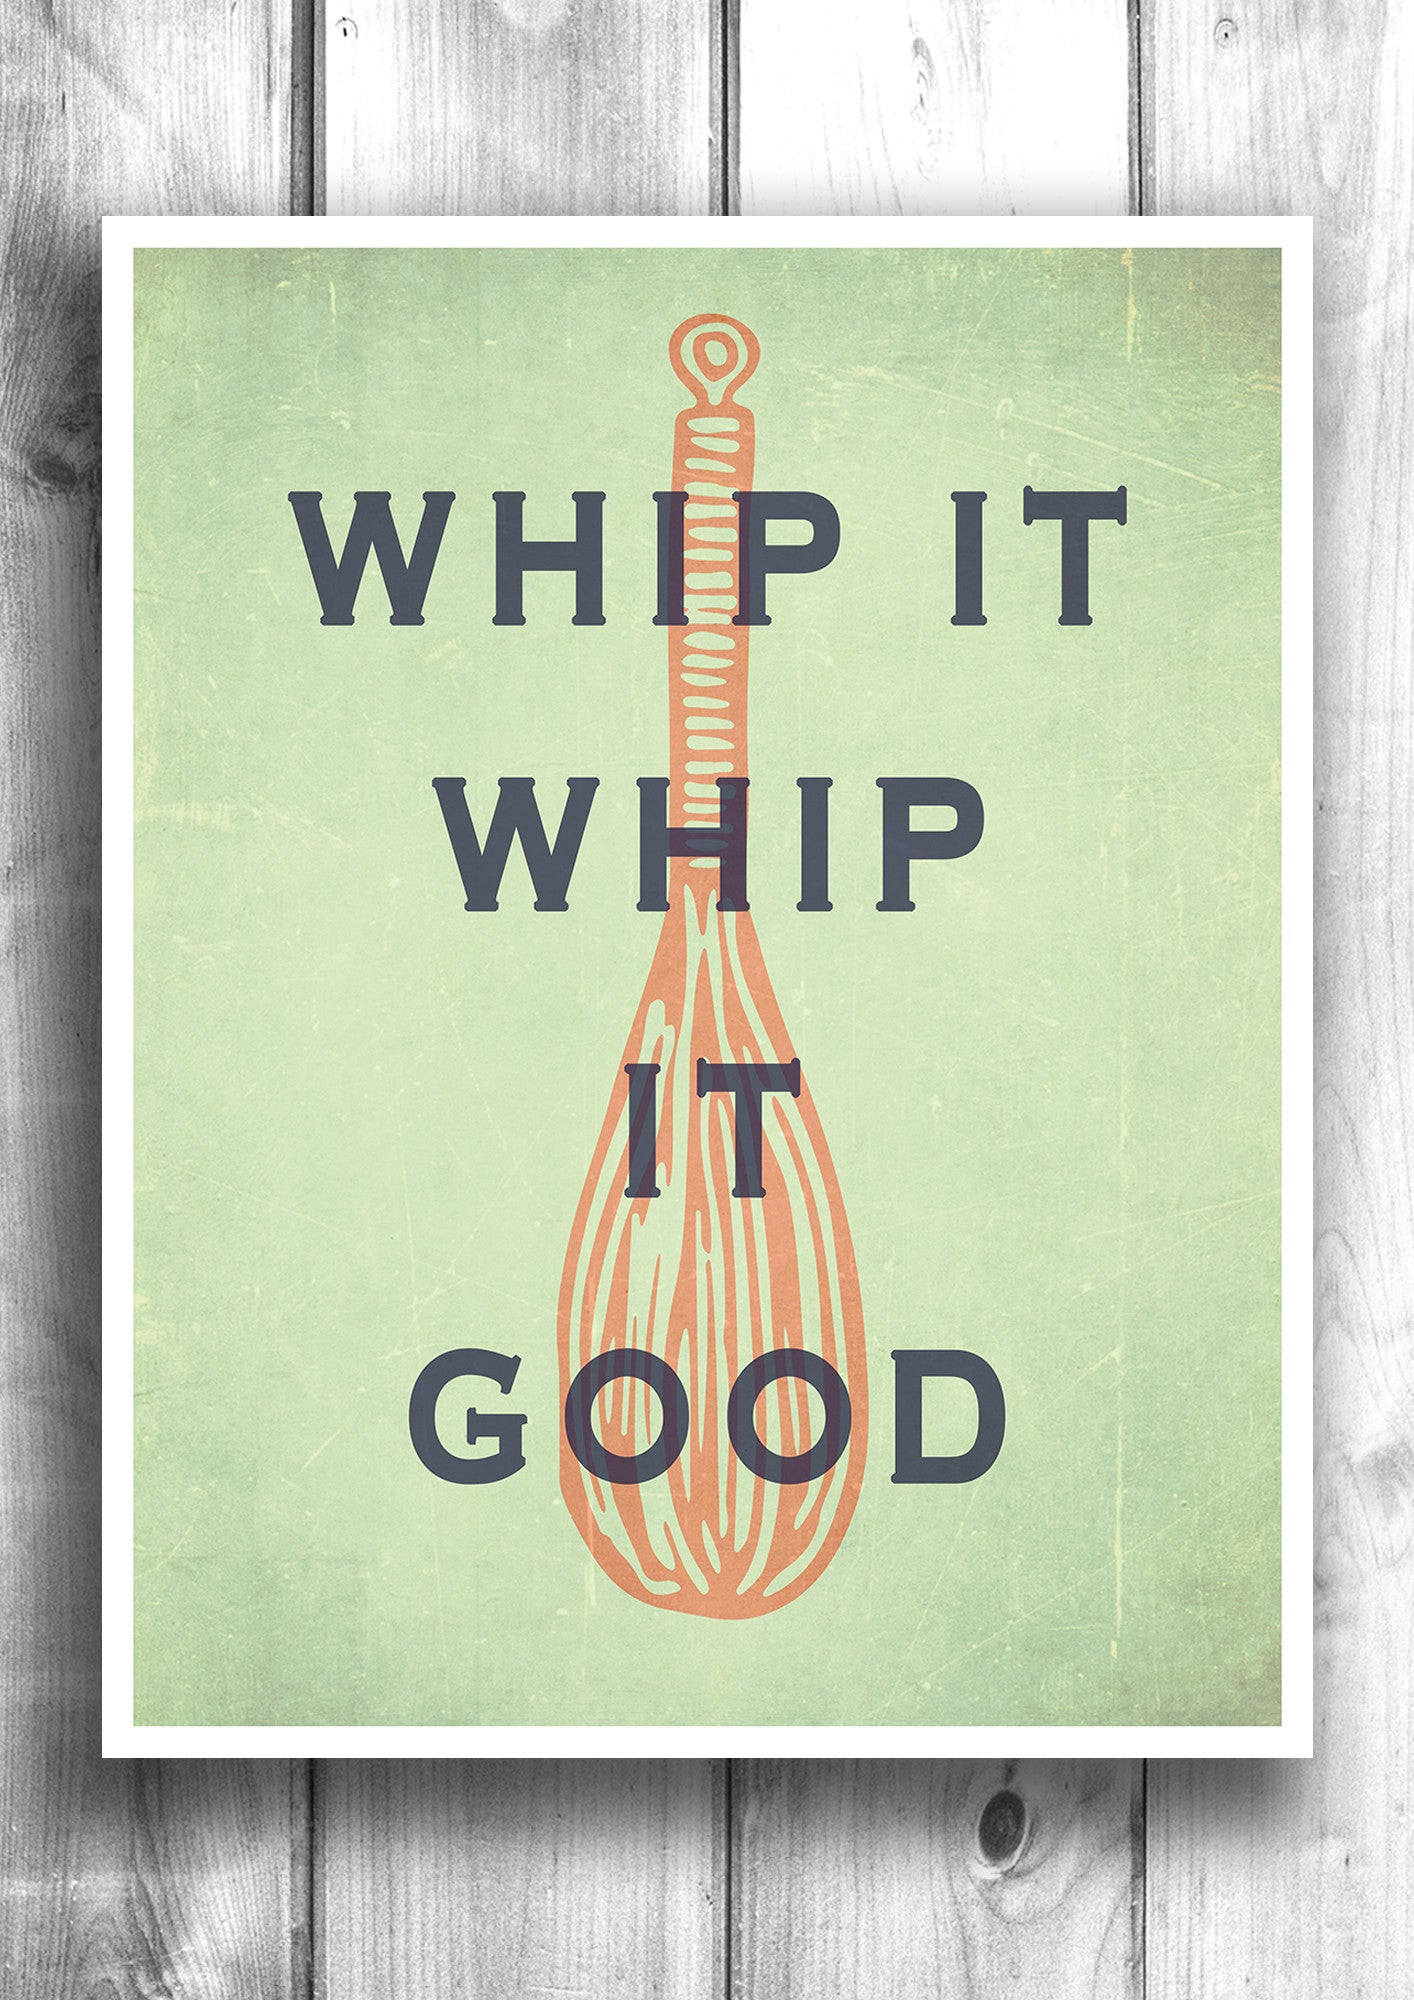 Whip it Whip it good - Fine art letterpress poster - Typographic Kitchen Series Print